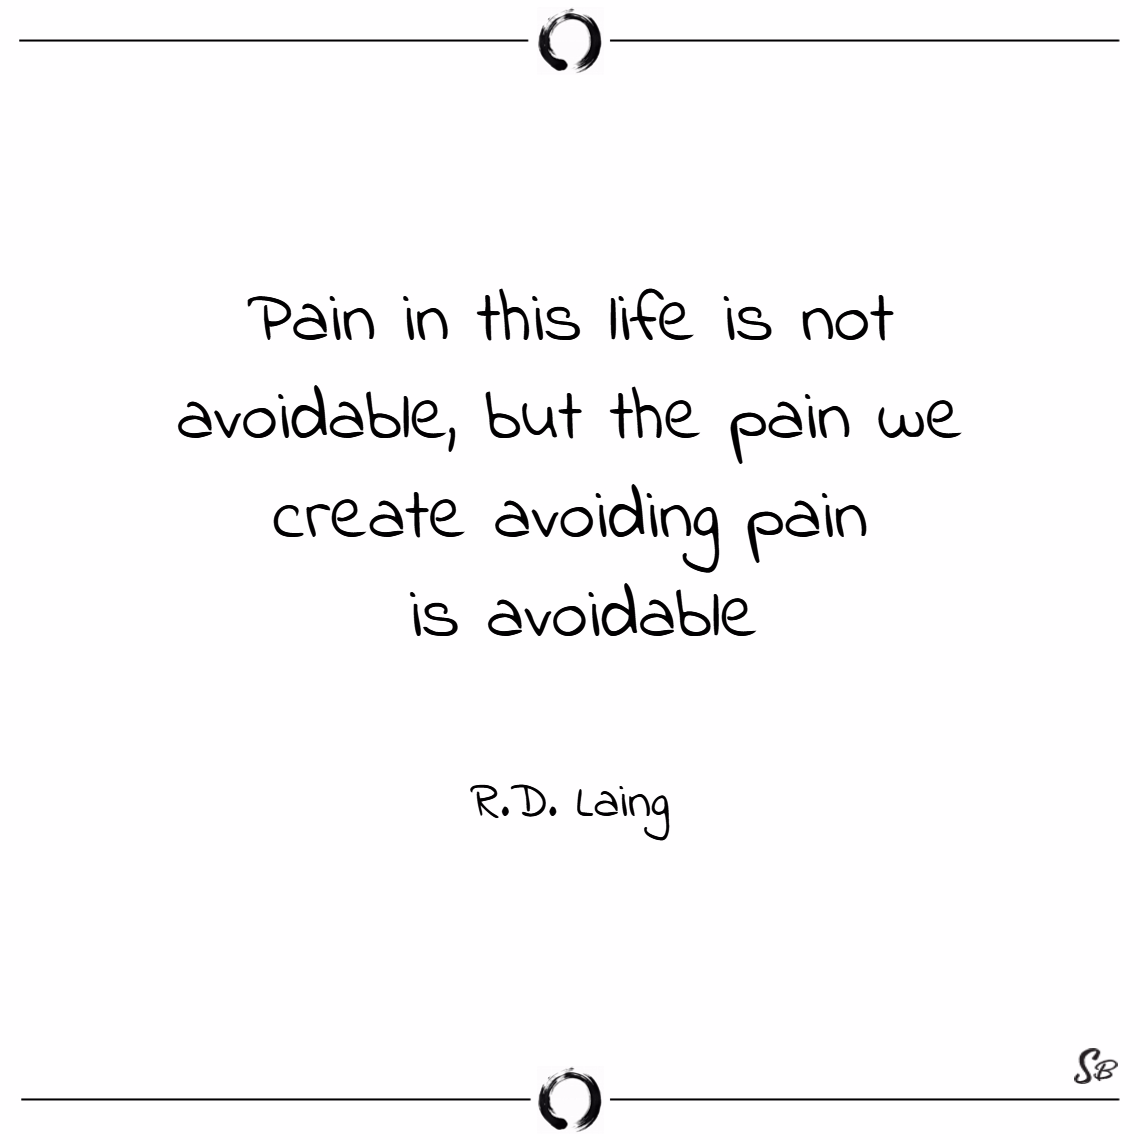 Pain in this life is not avoidable, but the pain we create avoiding pain is avoidable. – r.d. laing